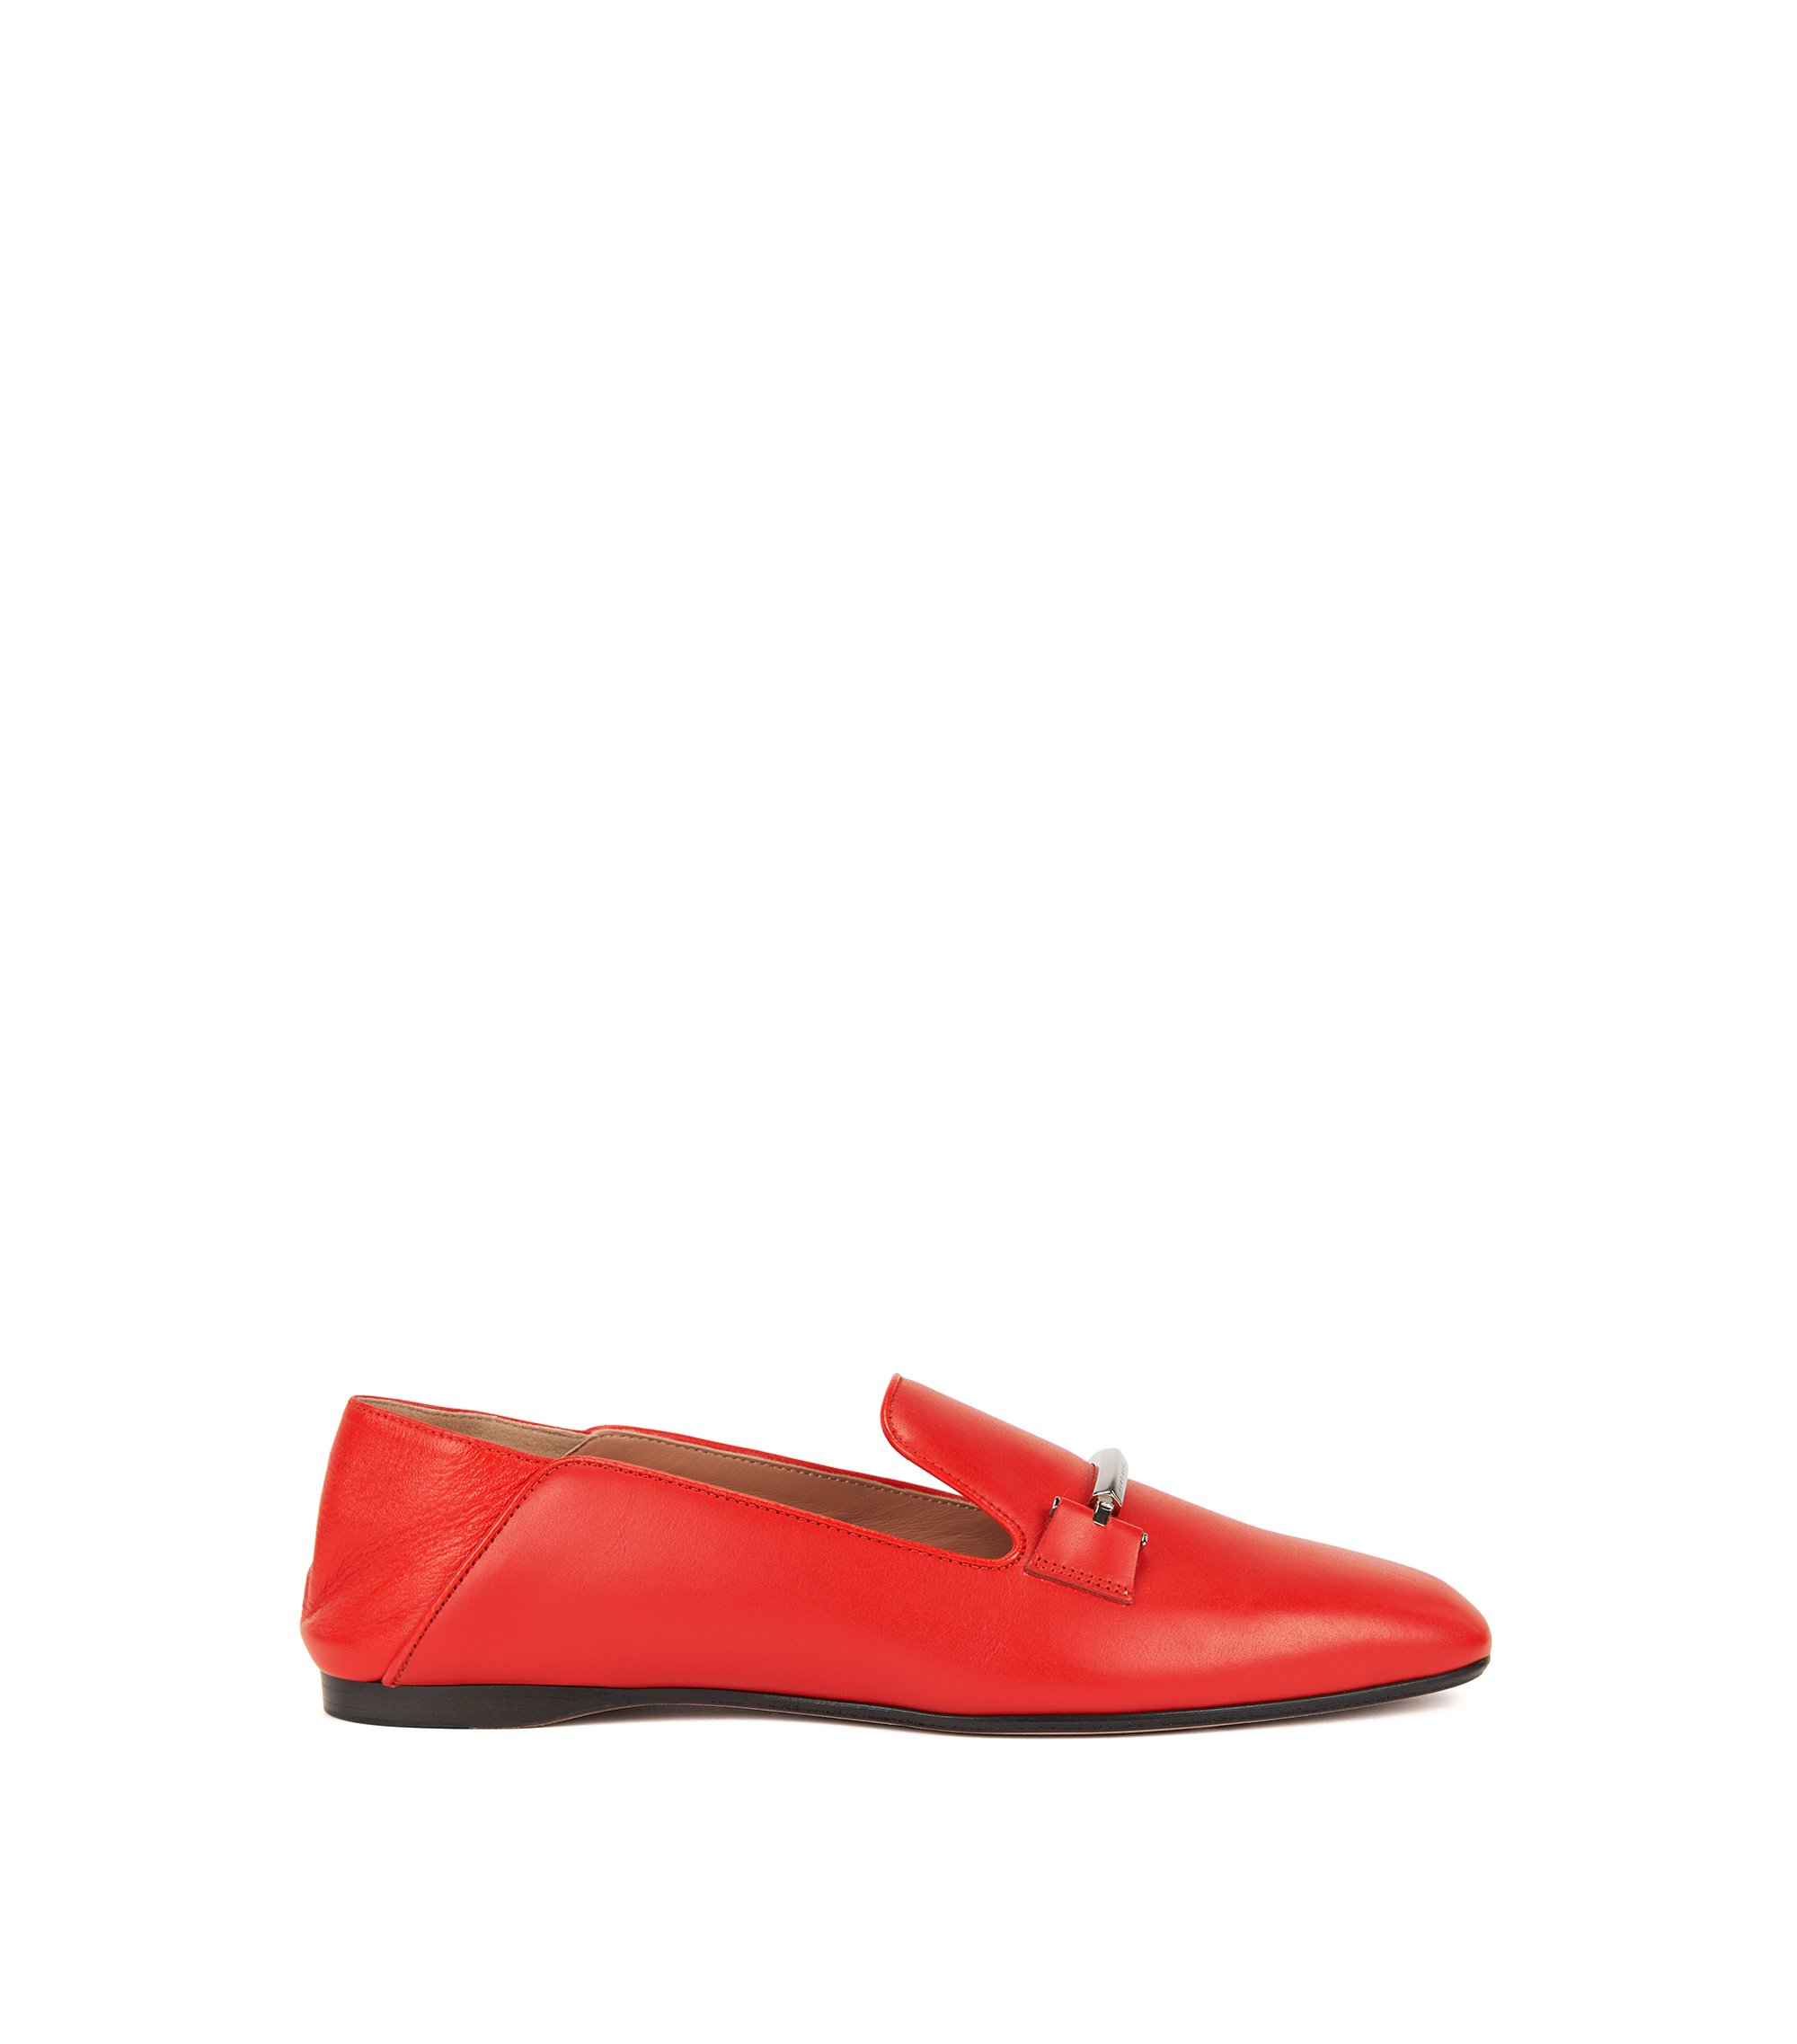 Leather loafers with fold-down heel counters, Red